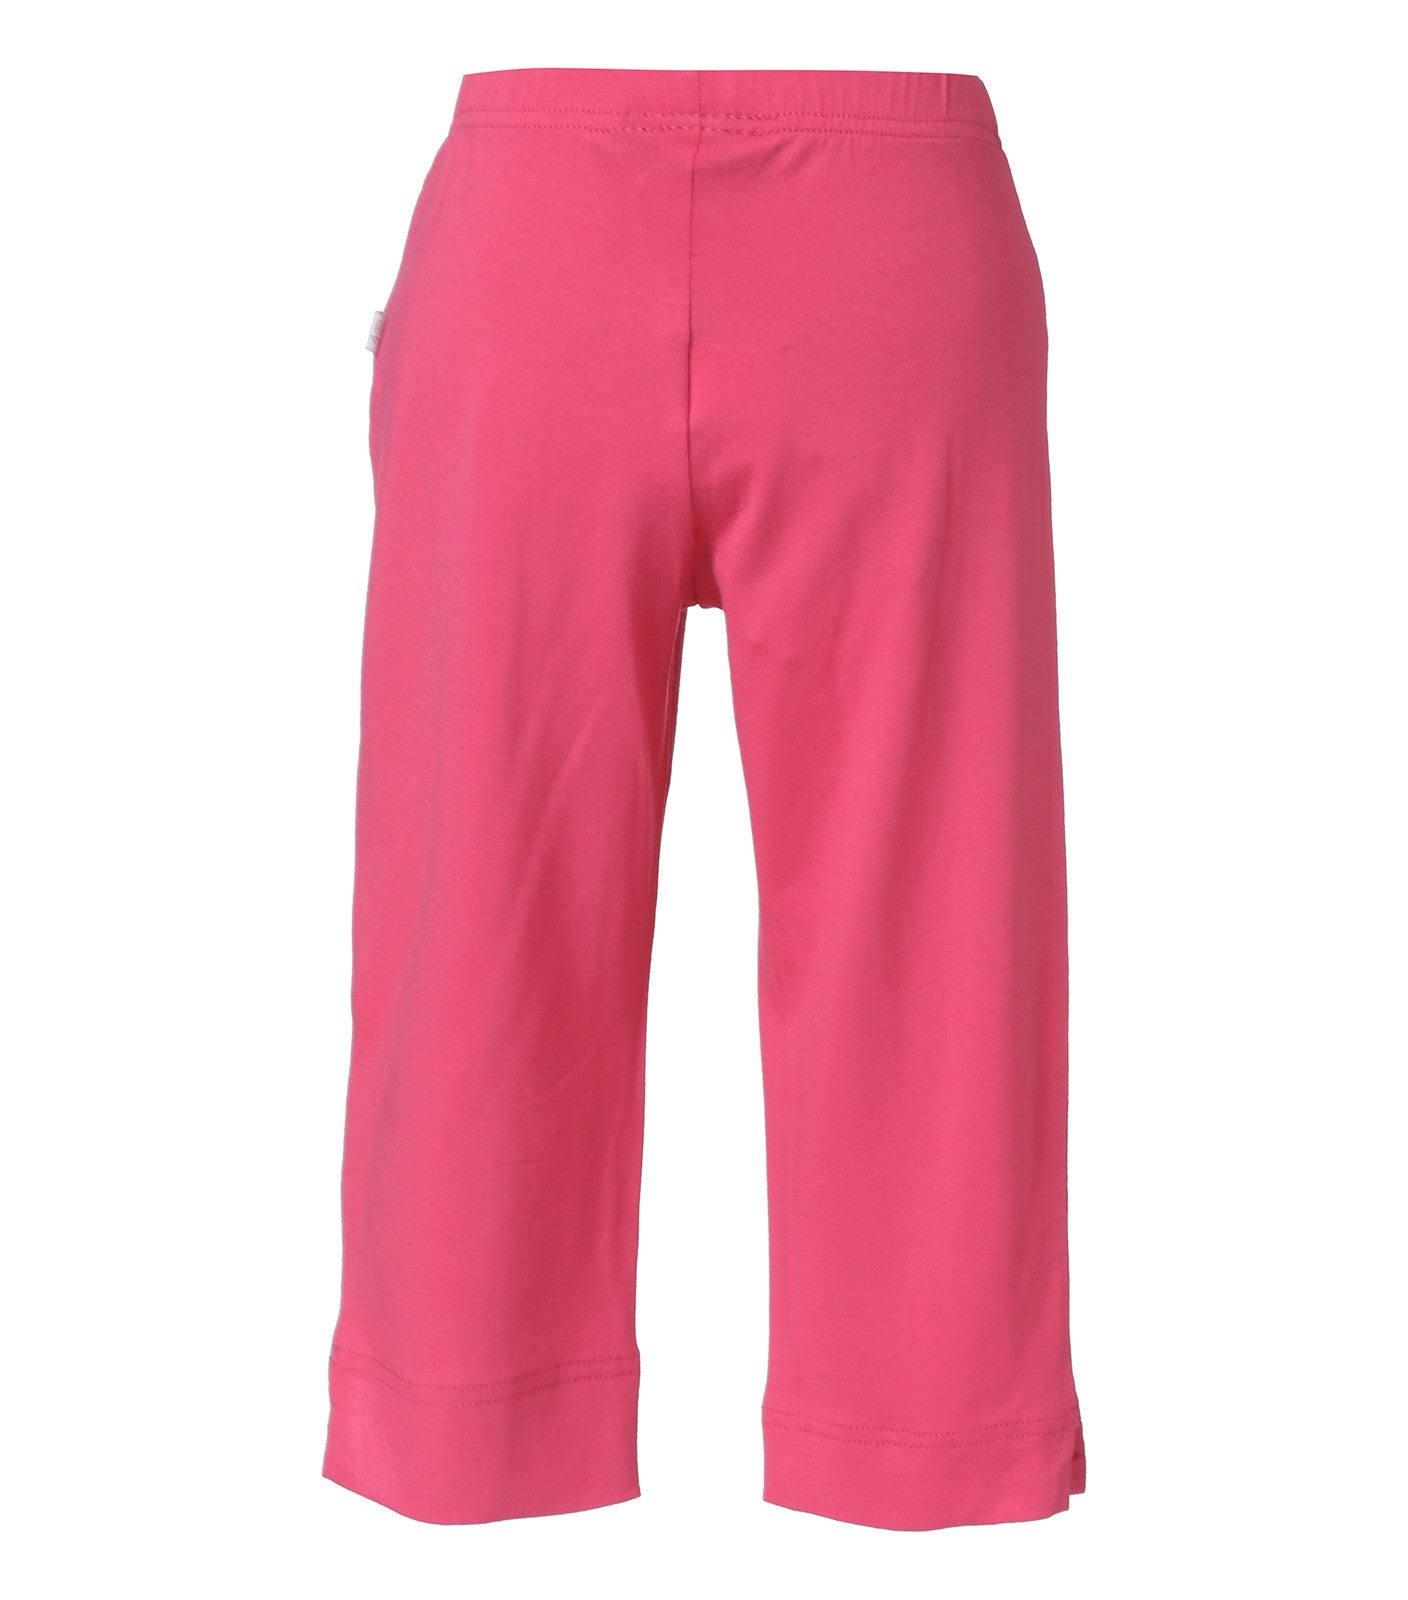 Girls Leggings in fuchsia Colour